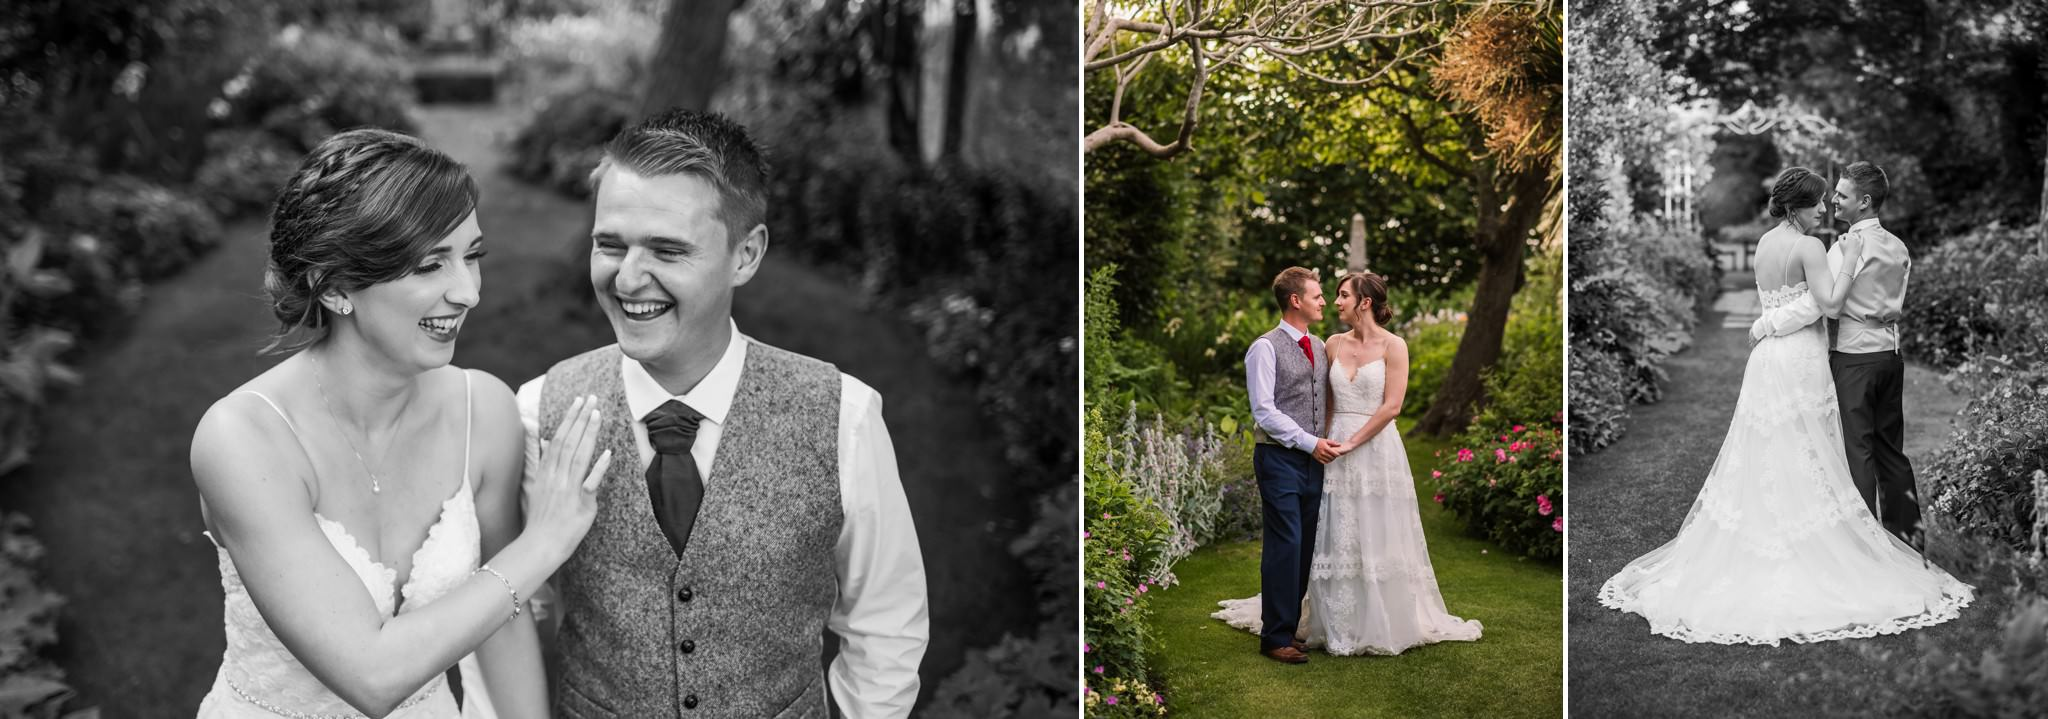 Dorset wedding photography at Parley Manor Wedding